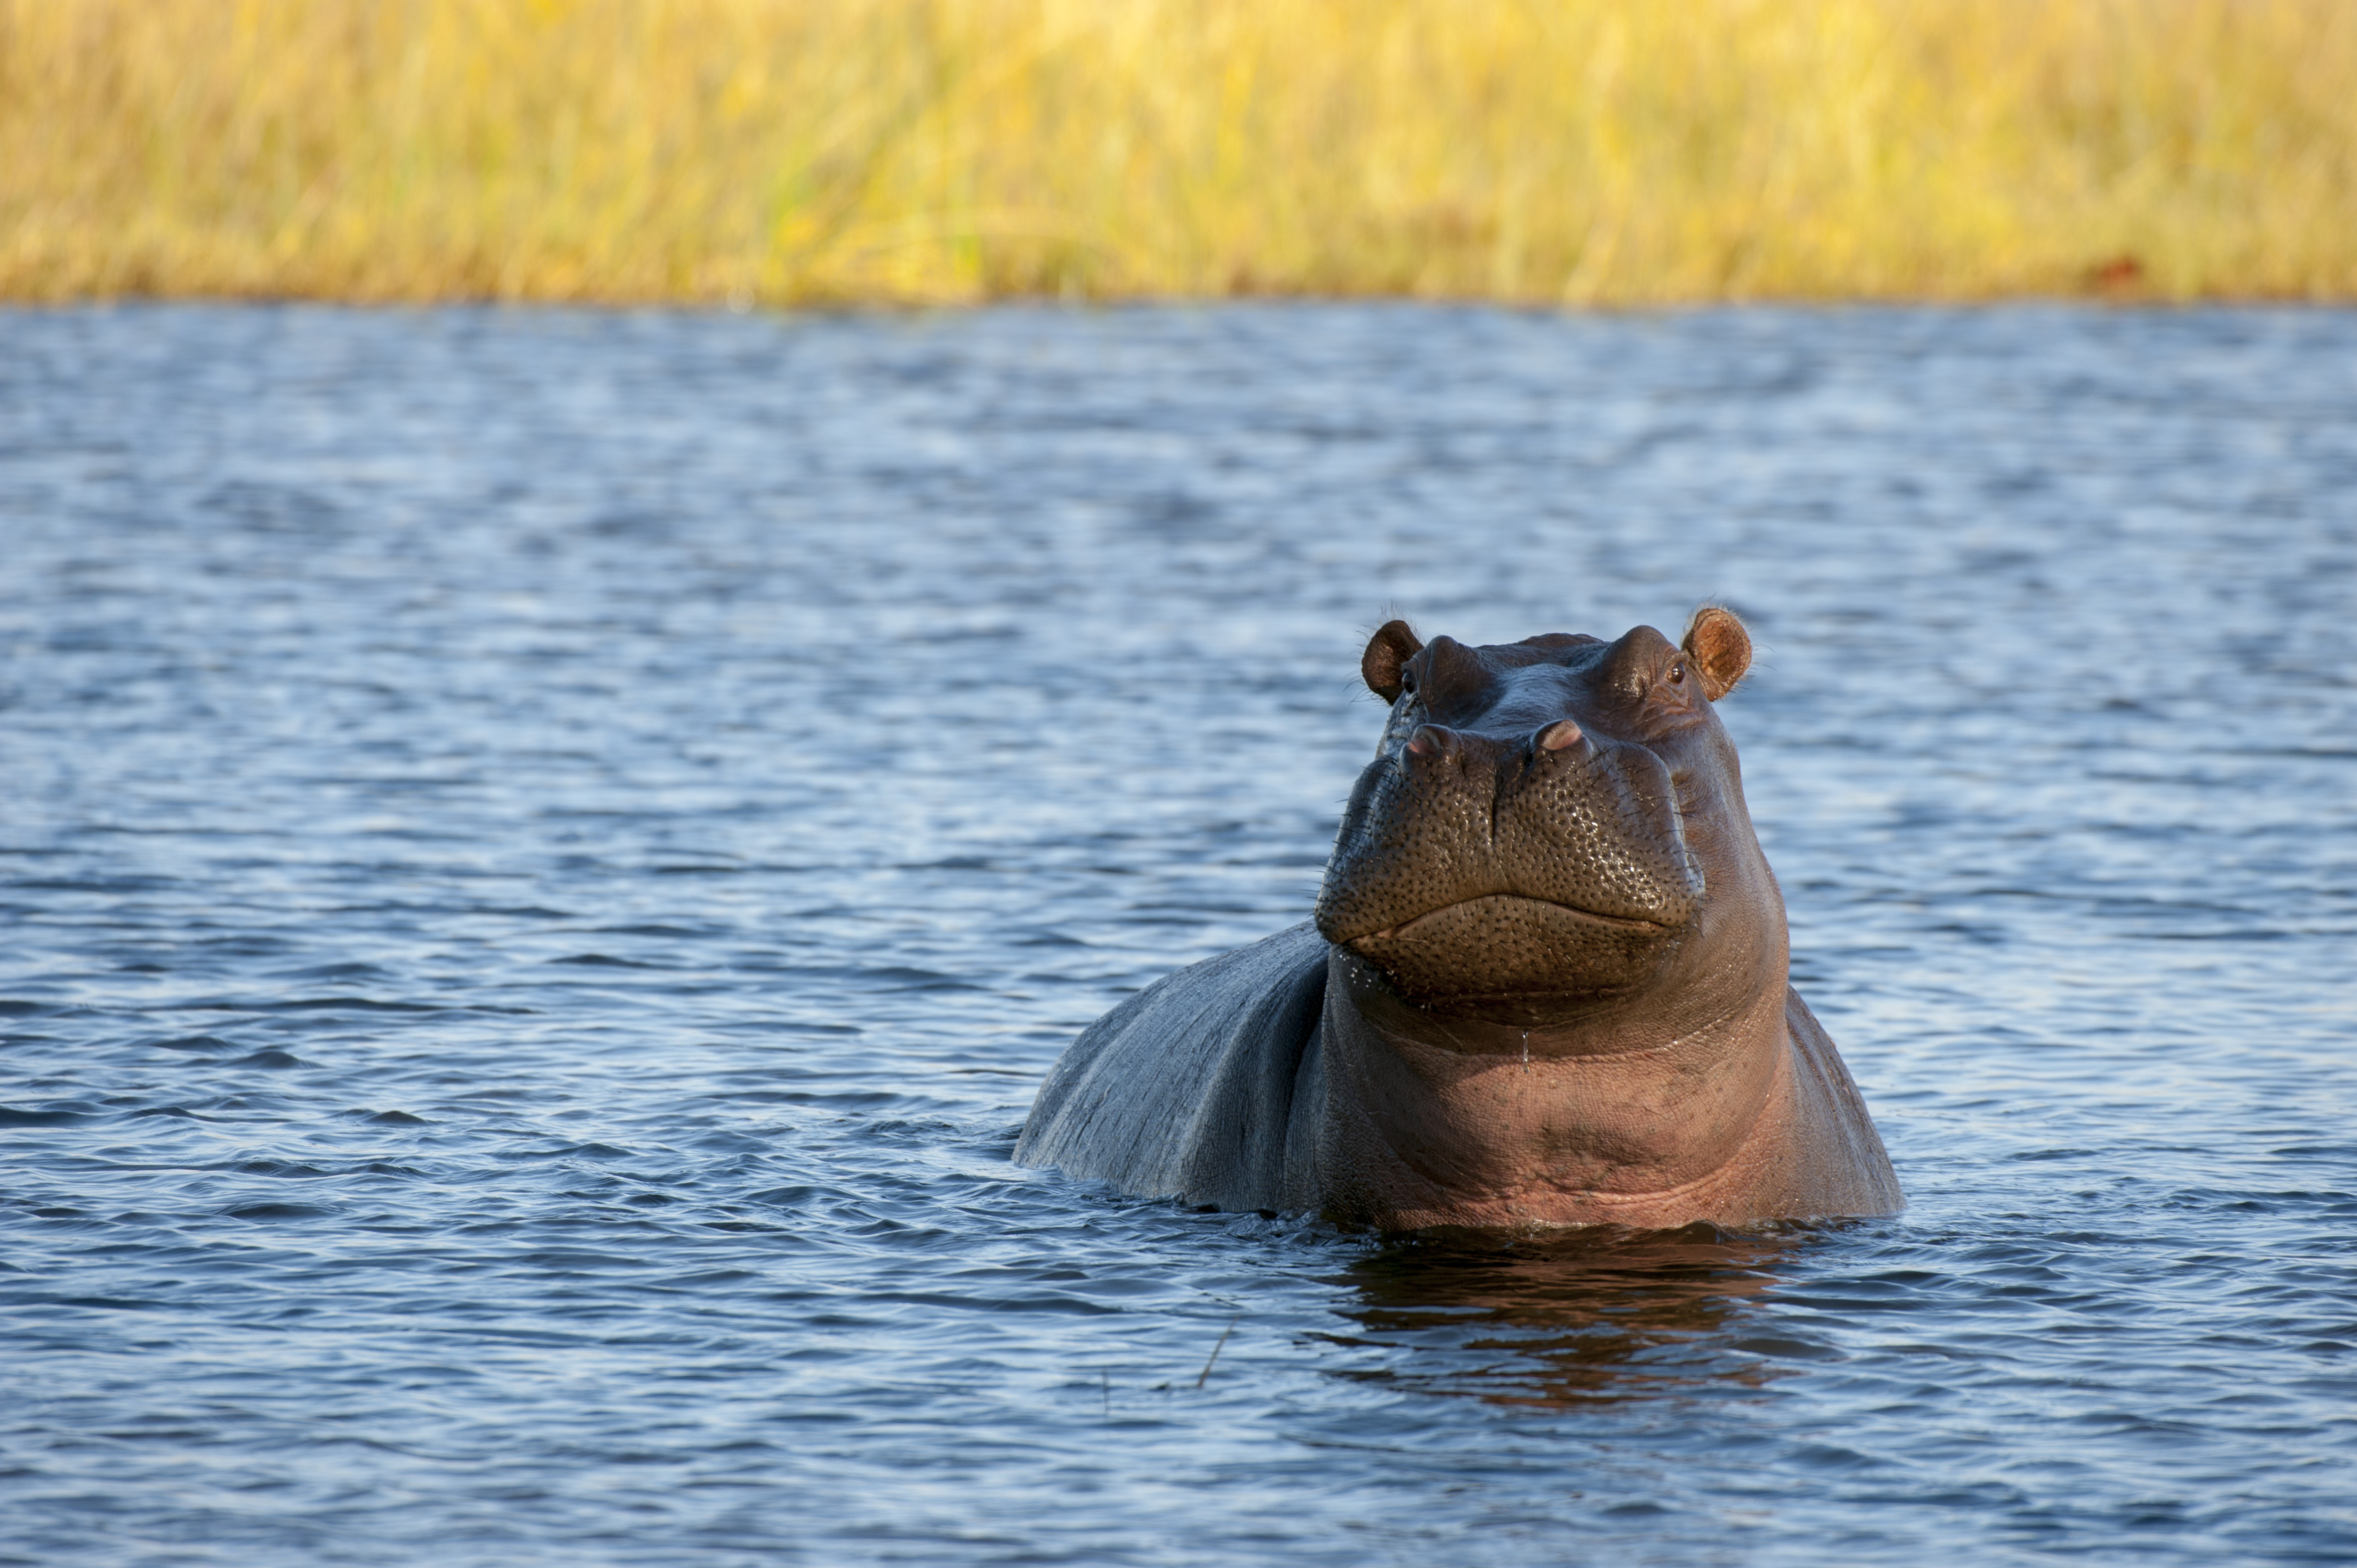 A hippopotamus in a river near Chitabe in the Okavango Delta in northern part of Botswana.